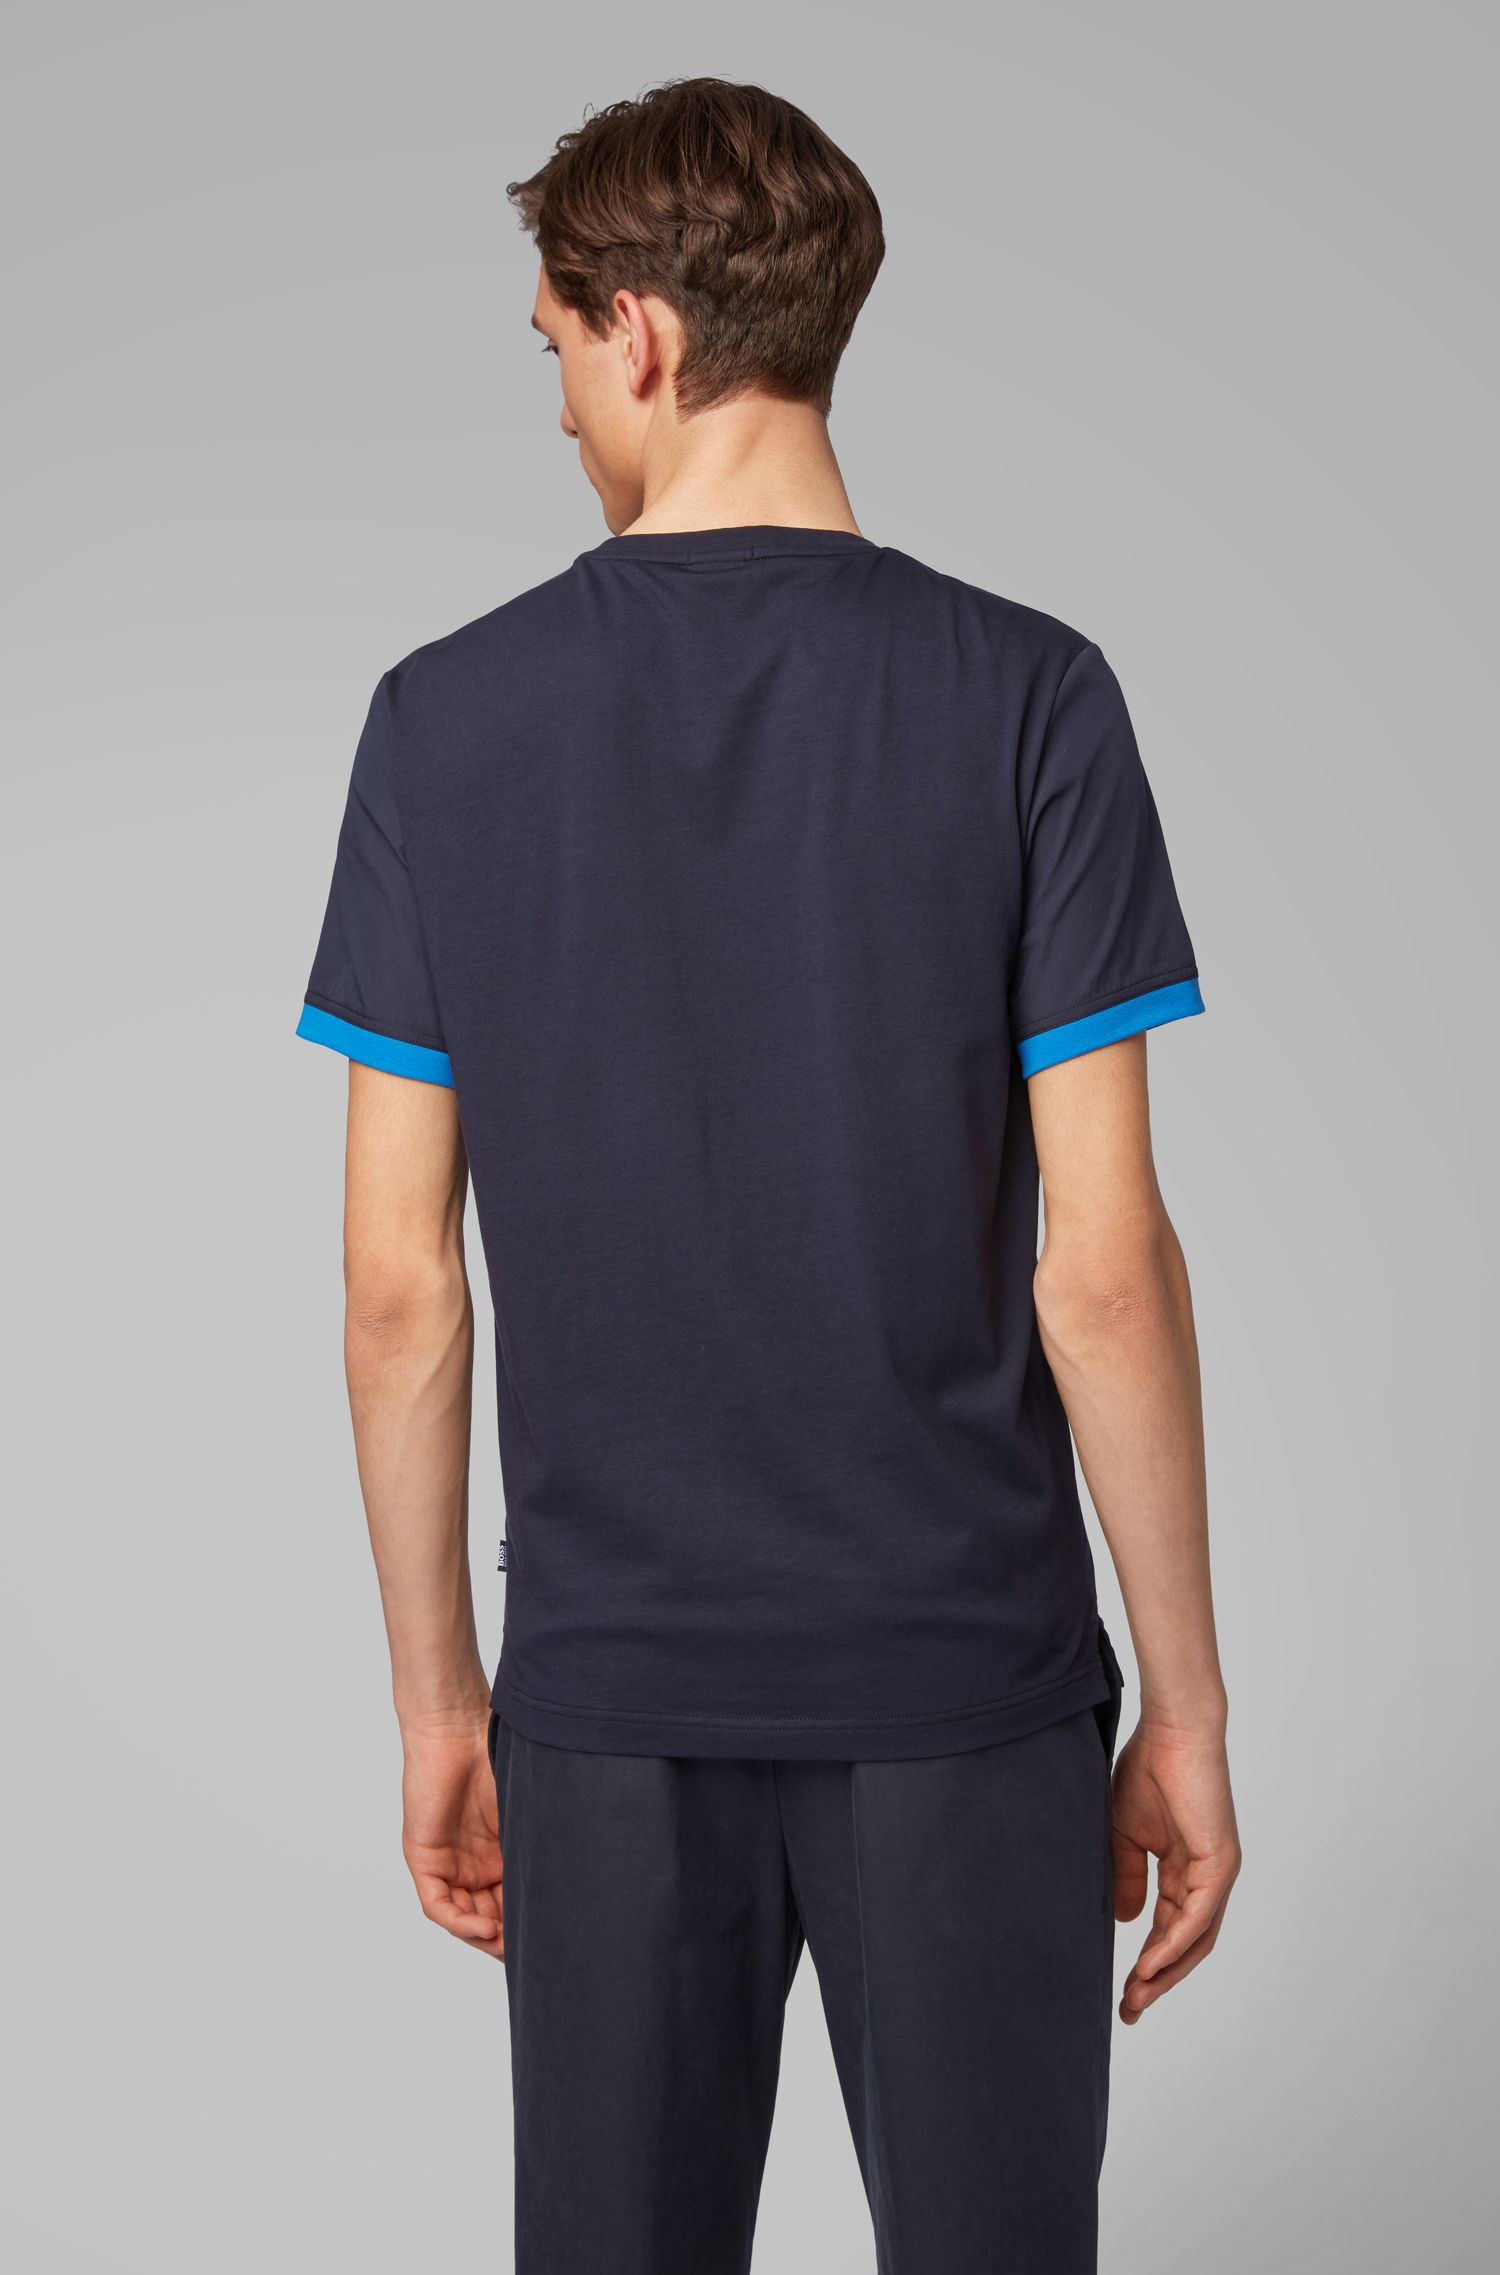 Woven T-shirt in liquid cotton with jersey back panel, Dark Blue